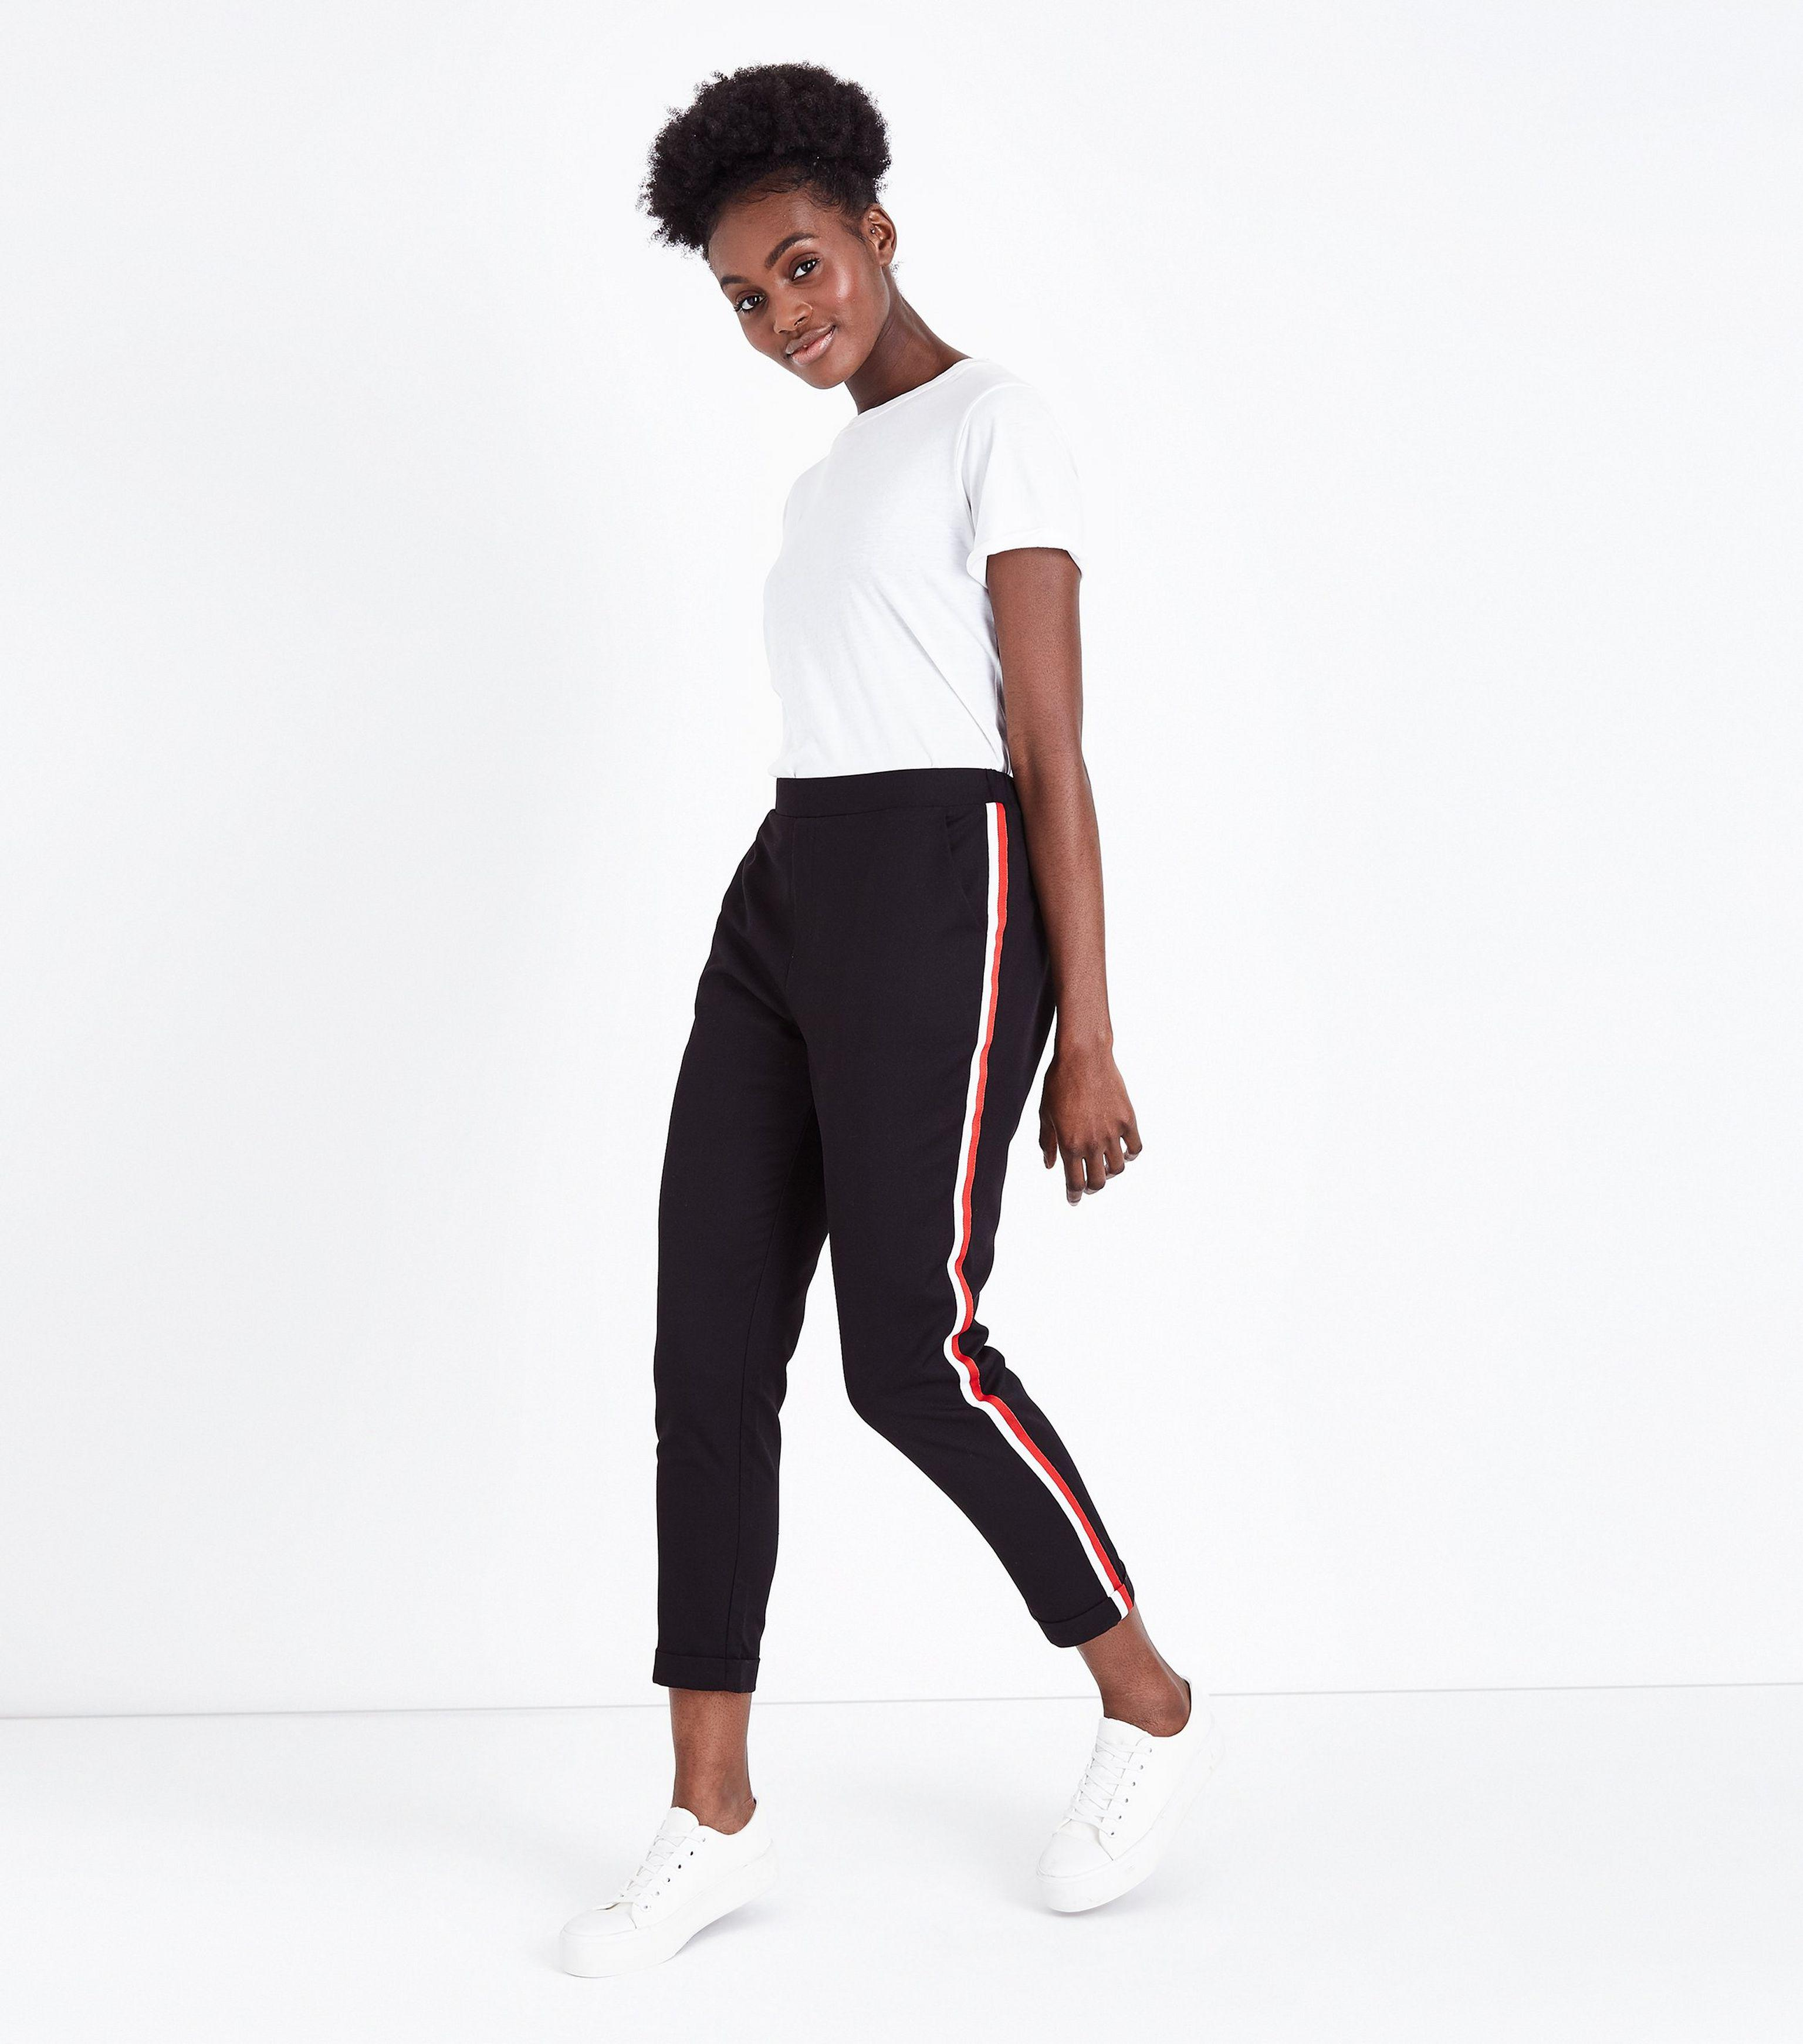 In Side Lyst Tapered New And Stripe Red Look Trousers Black 6Wgqfgw14